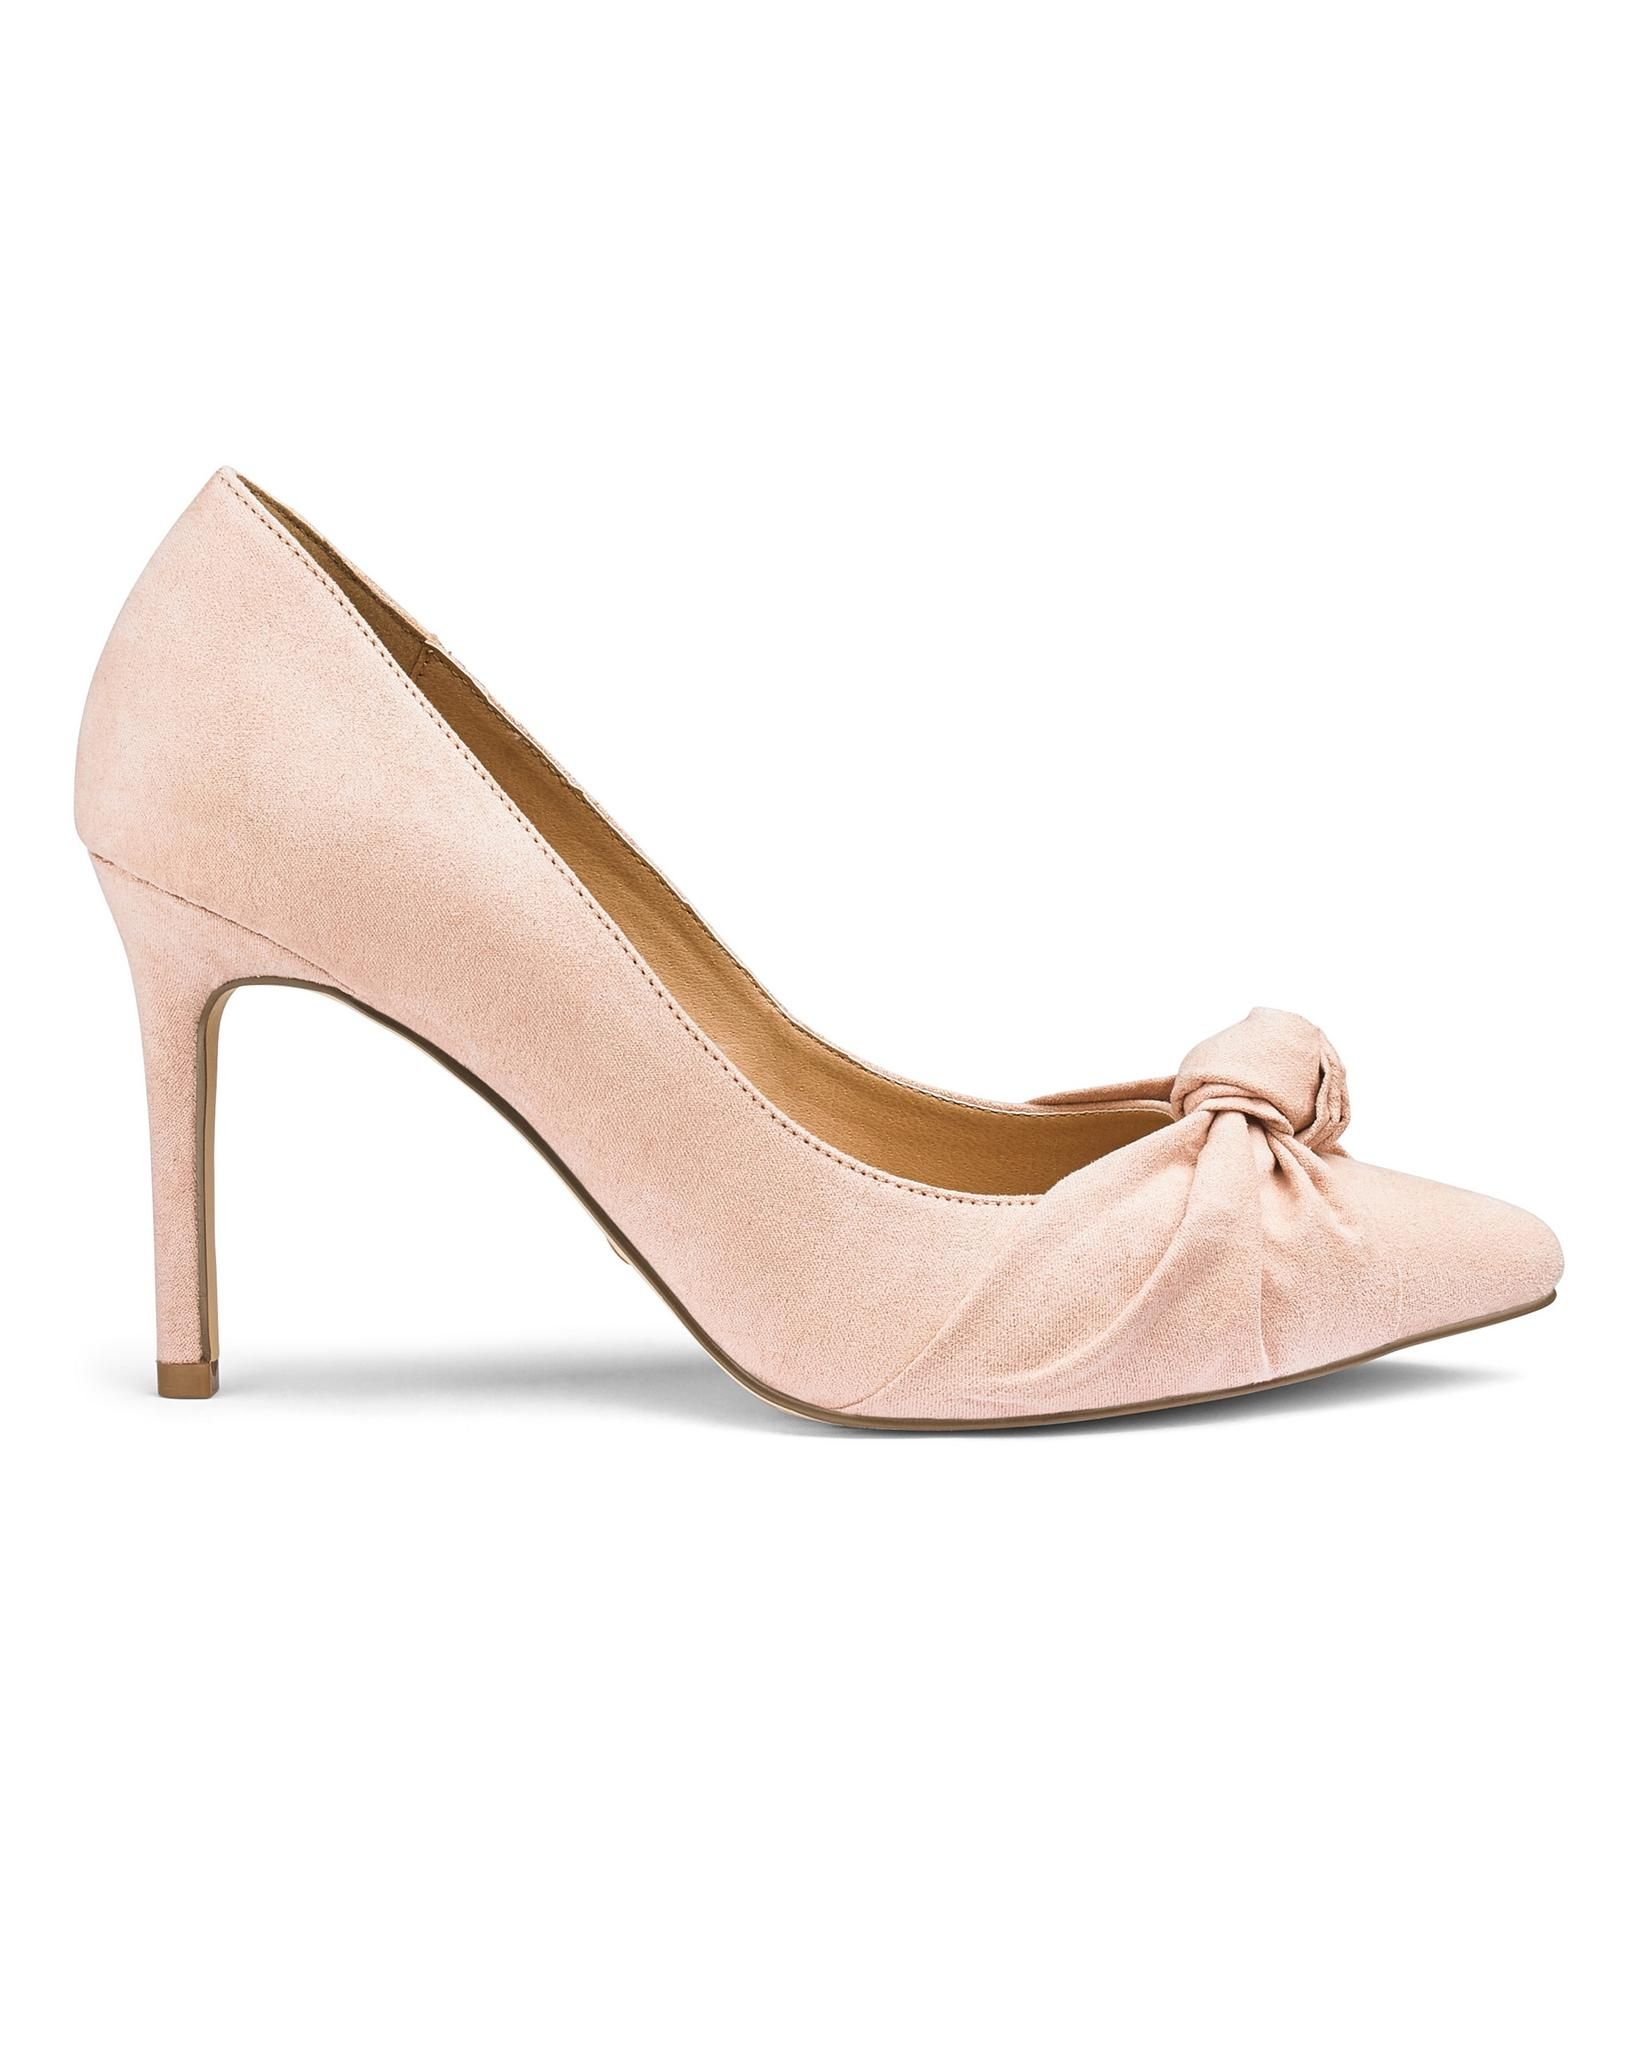 Sole Diva Knot Pumps Extra Wide Eee Fit Court Shoes Shoes Sole